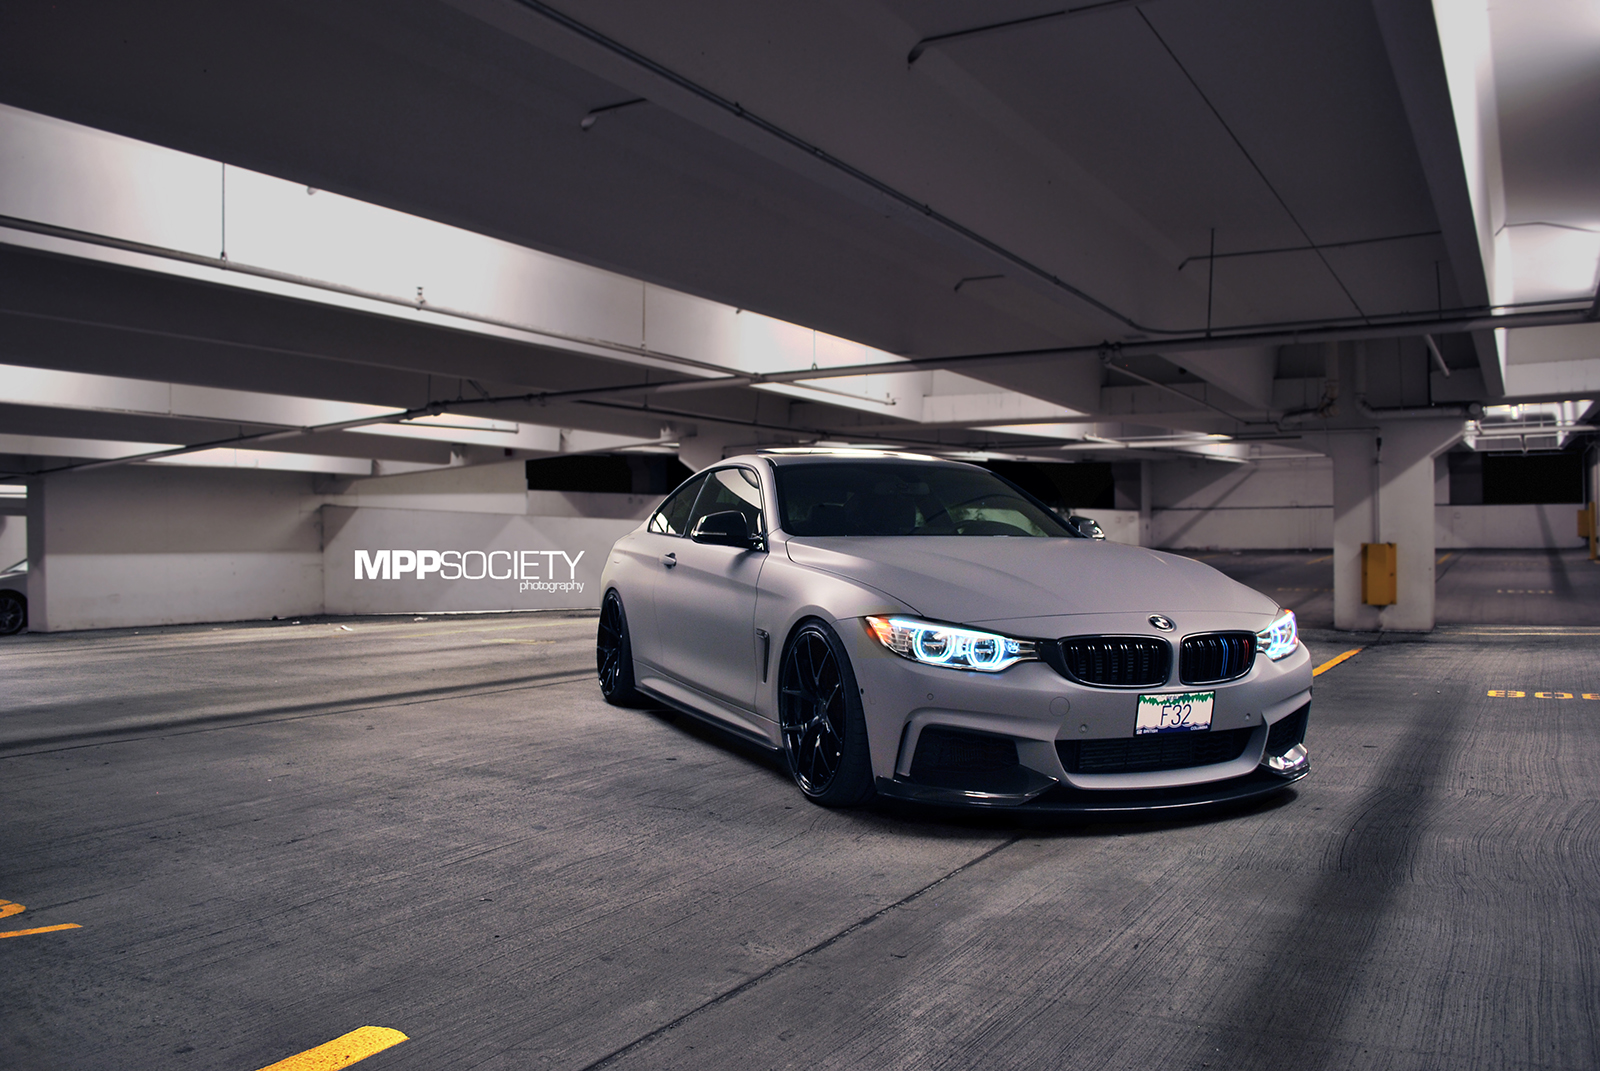 MPPSOCIETY F32_435 BMW 435xi PUR Wheels 04